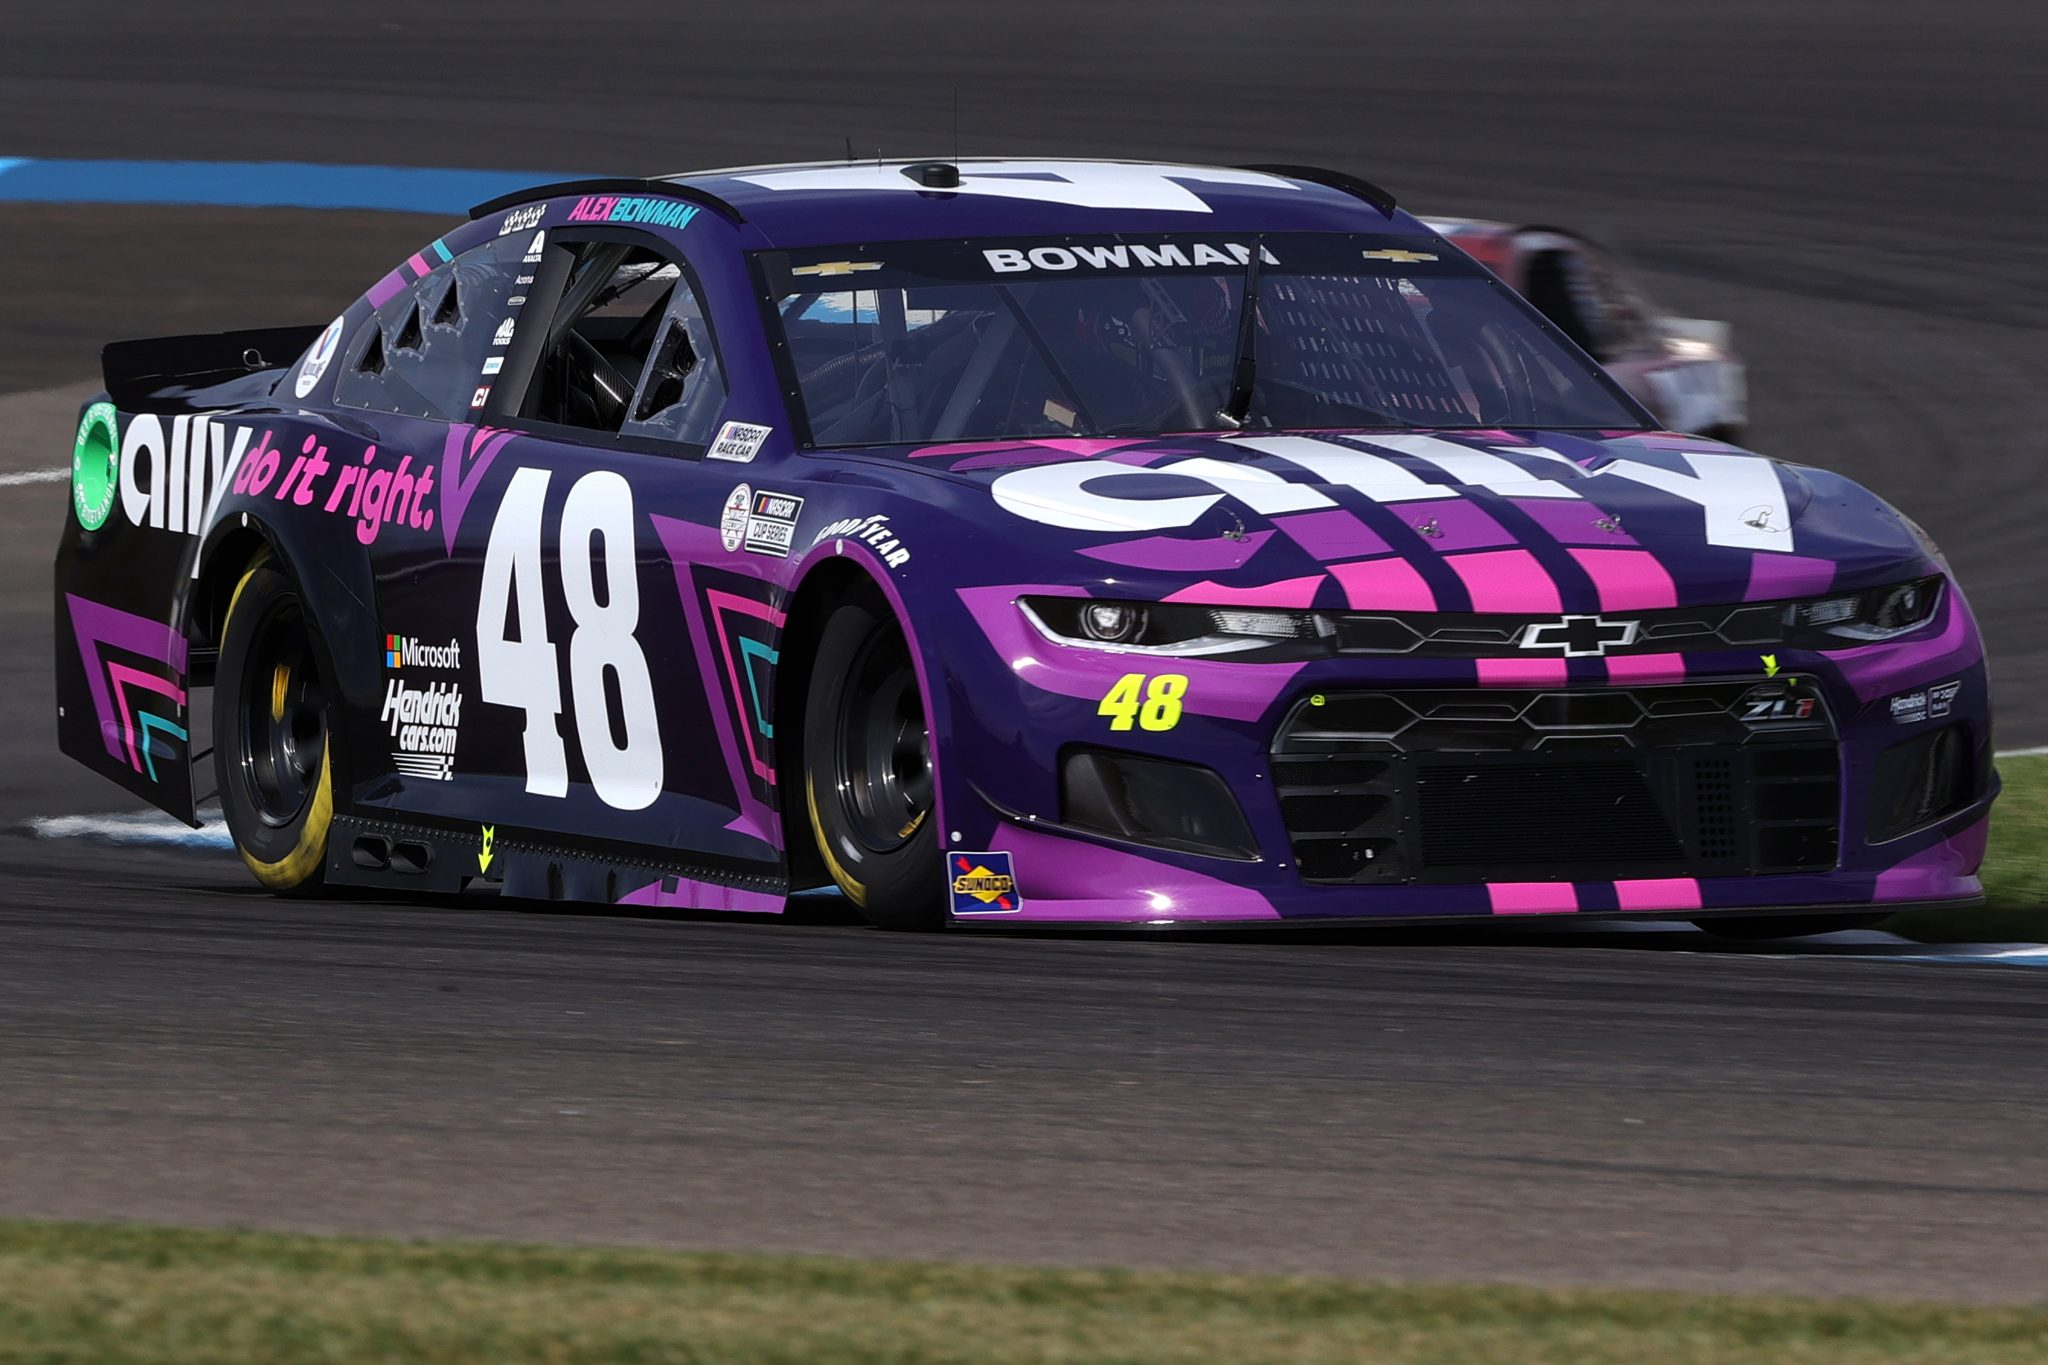 INDIANAPOLIS, INDIANA - AUGUST 14: Alex Bowman, driver of the #48 Ally Chevrolet, drivesduring practice for the NASCAR Cup Series Verizon 200 at the Brickyard at Indianapolis Motor Speedway on August 14, 2021 in Indianapolis, Indiana. (Photo by Stacy Revere/Getty Images) | Getty Images